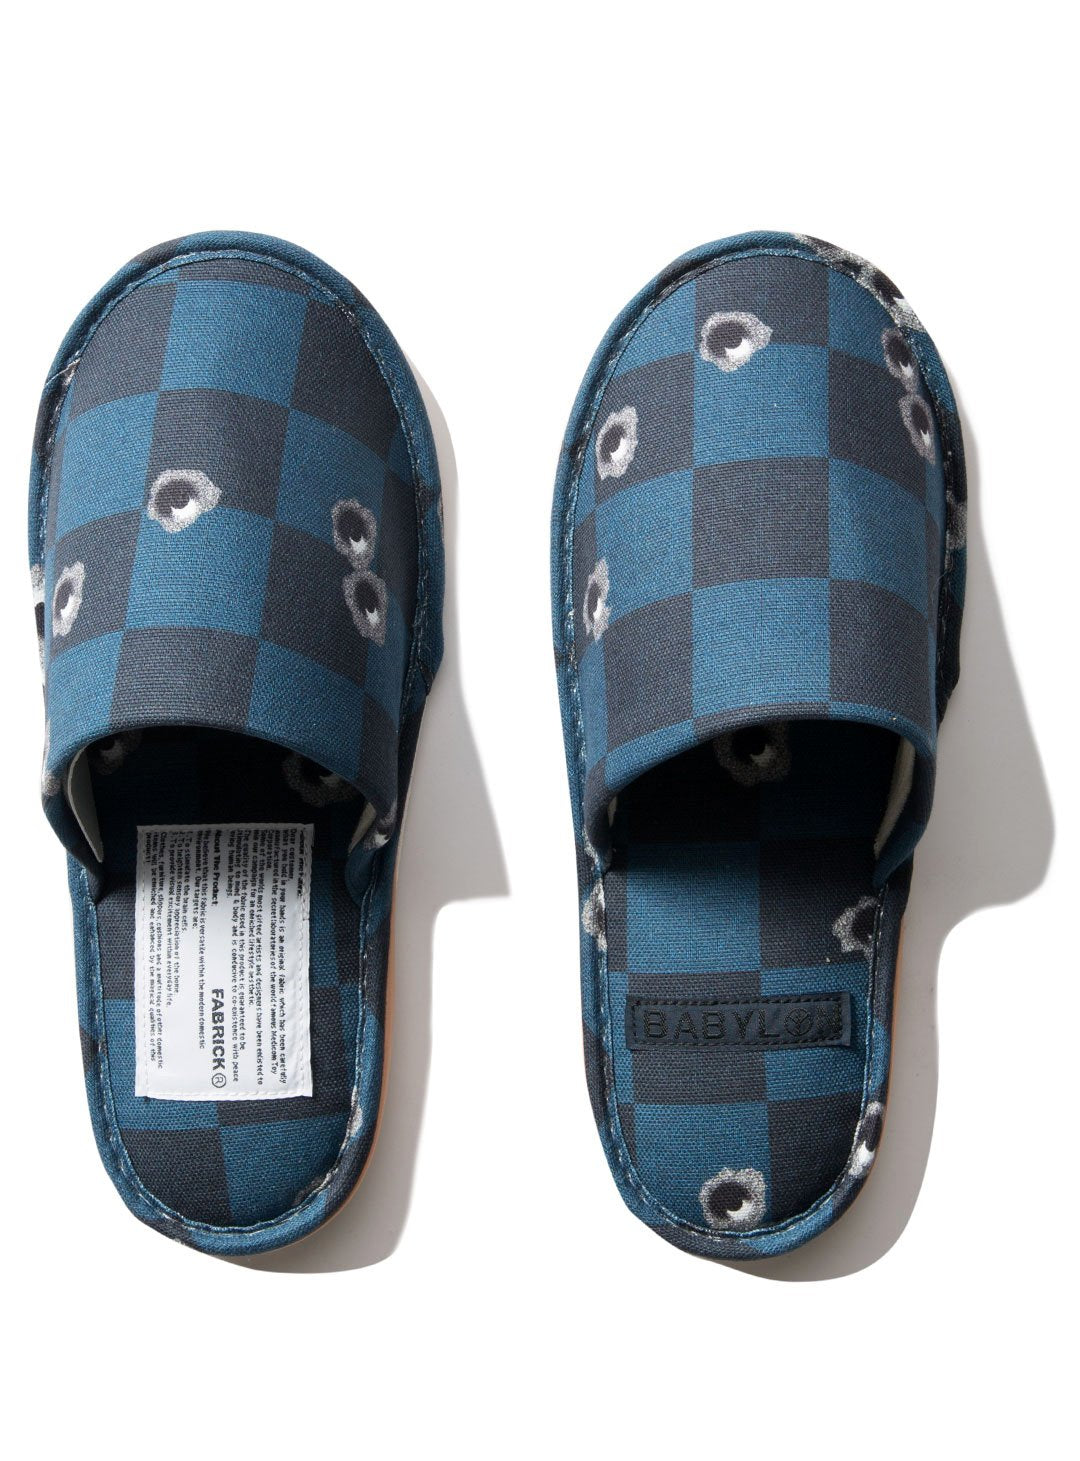 BABYLON L.A. SLIPPERS